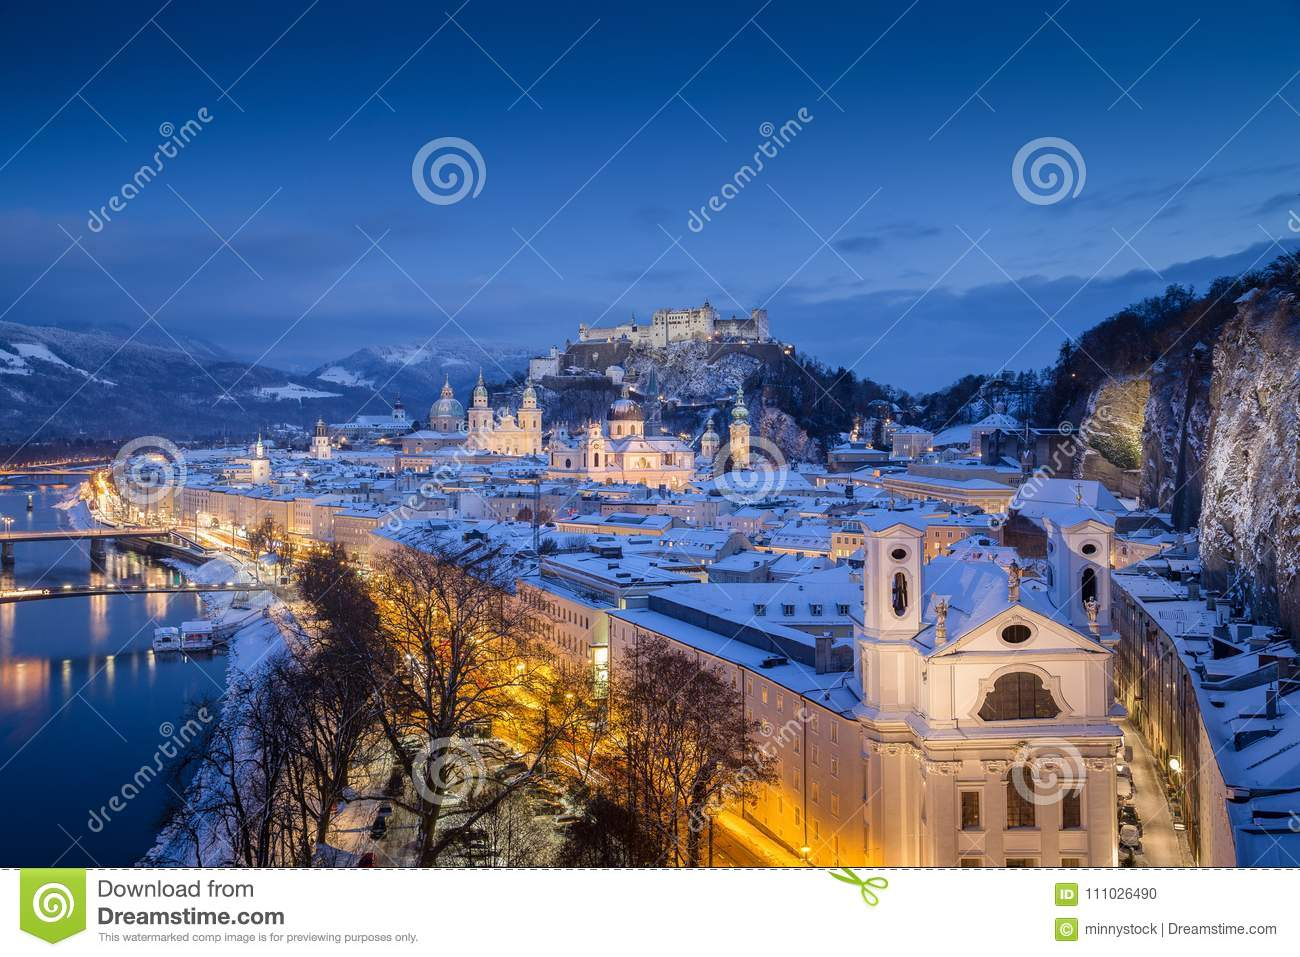 Salzburg Christmas Time.Classic View Of Salzburg At Christmas Time In Winter